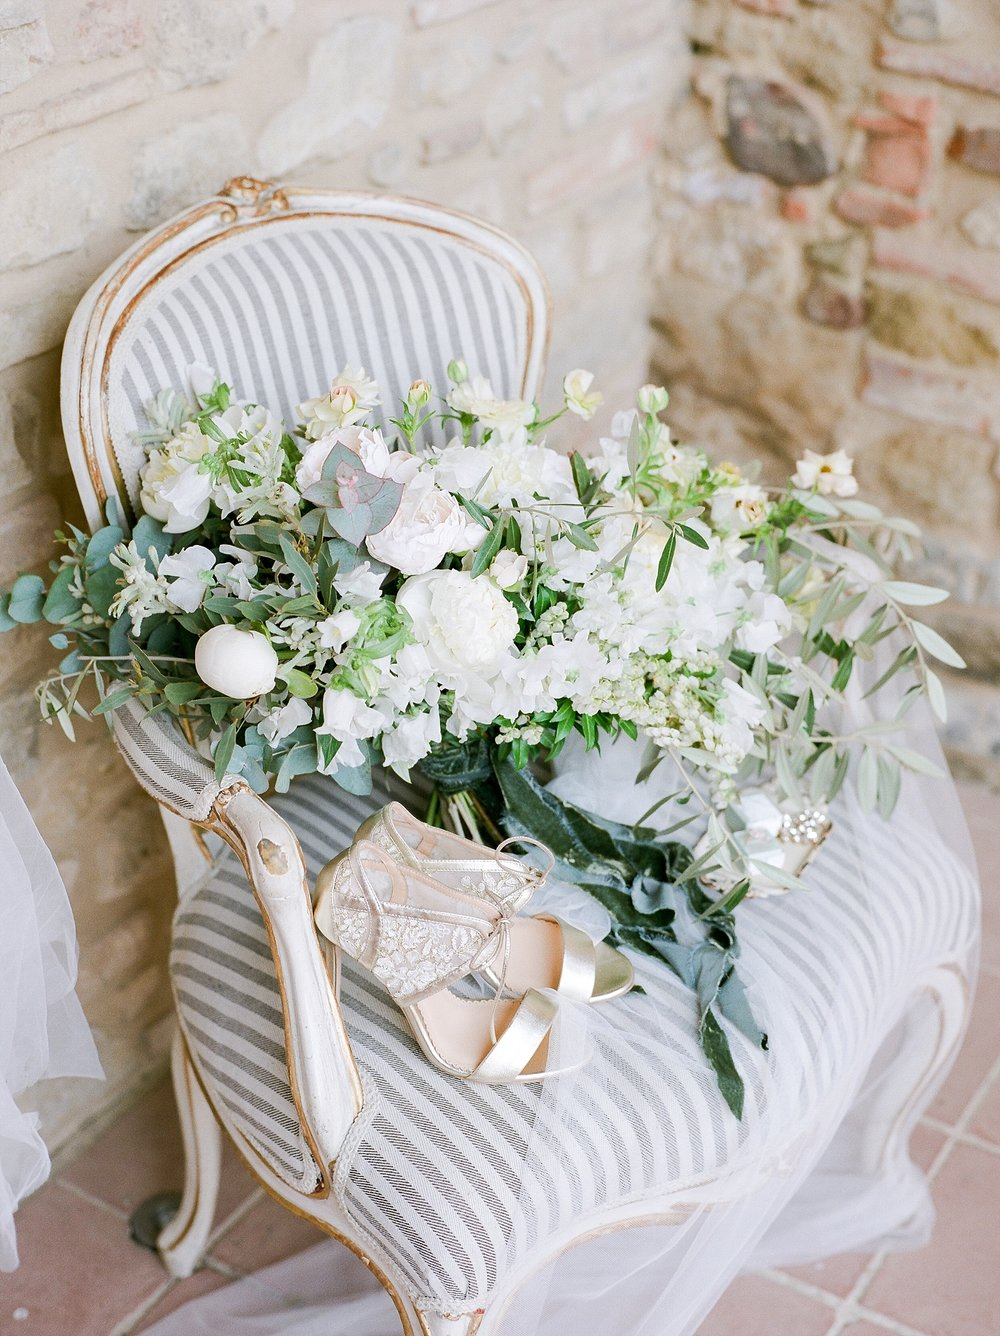 All White Destination Wedding in the Hills of Tuscany Italy at Estate Borgo Petrognano by Kelsi Kliethermes Photography_0027.jpg